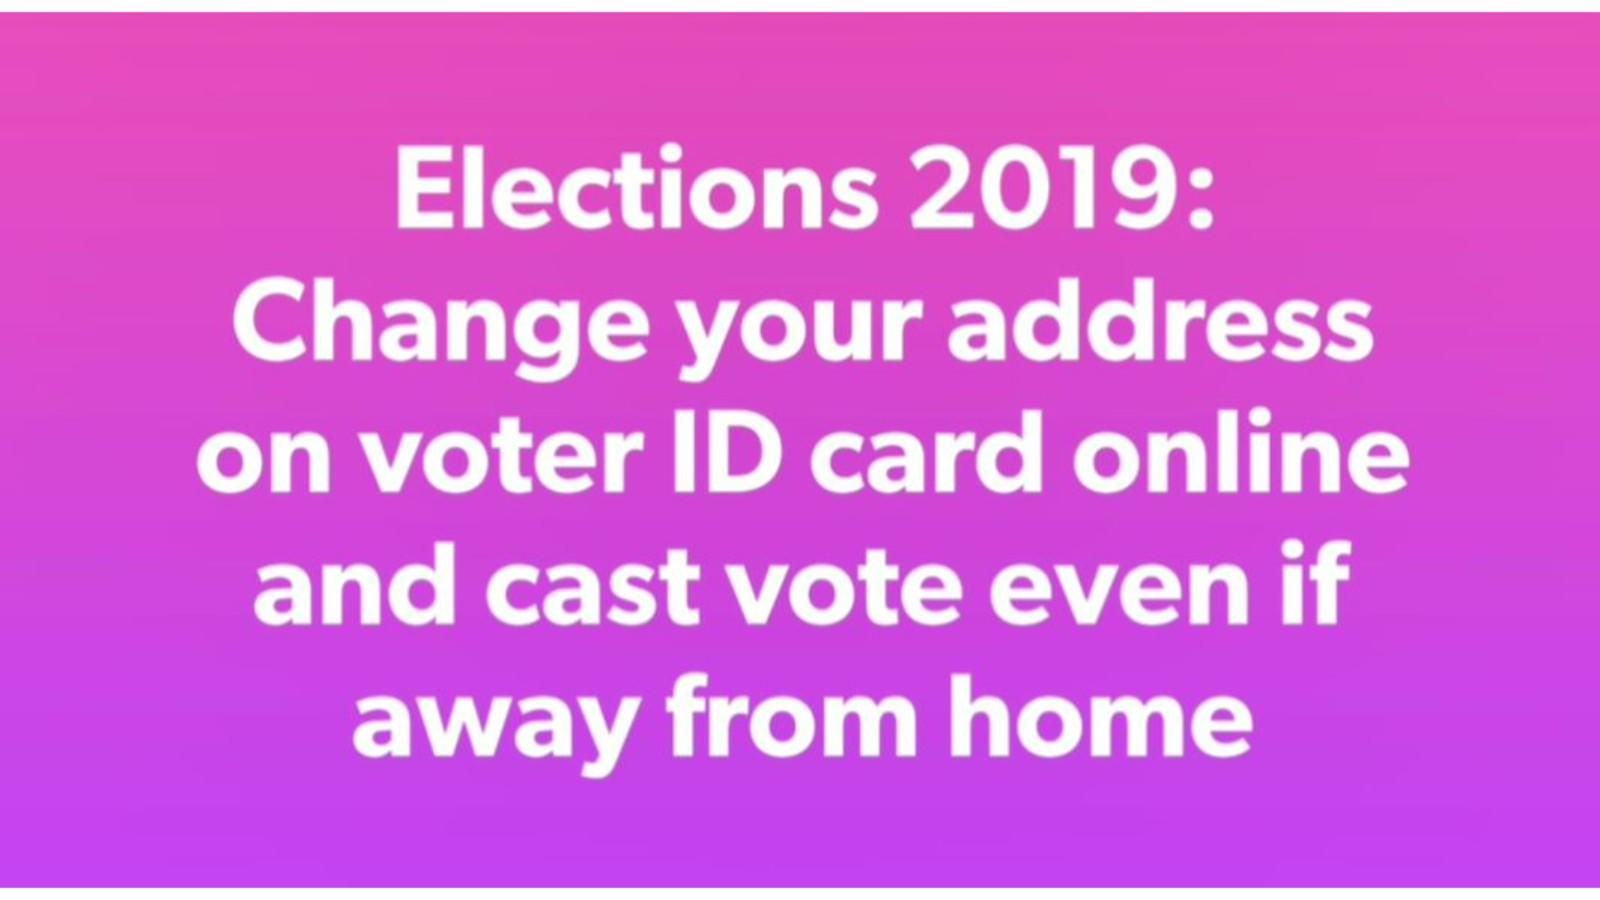 Elections 2019: How to change your address on voter ID card